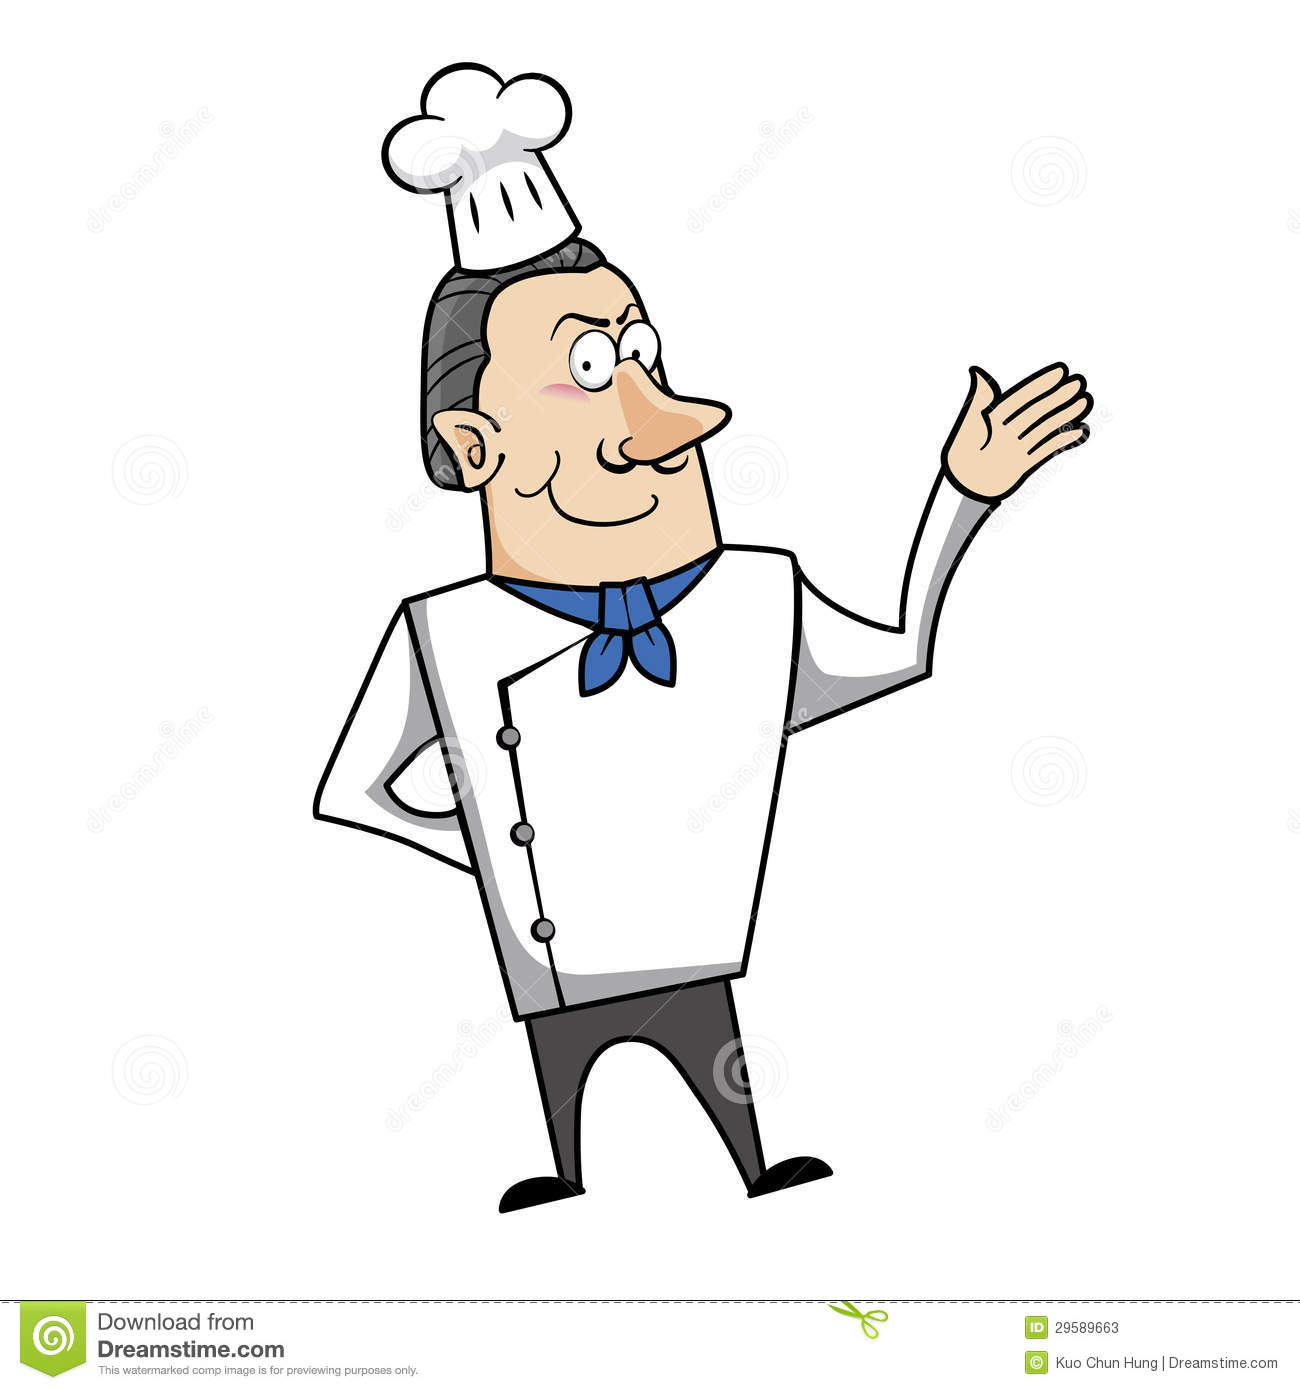 Cartoon Chef Stock Photos - Image: 29589663